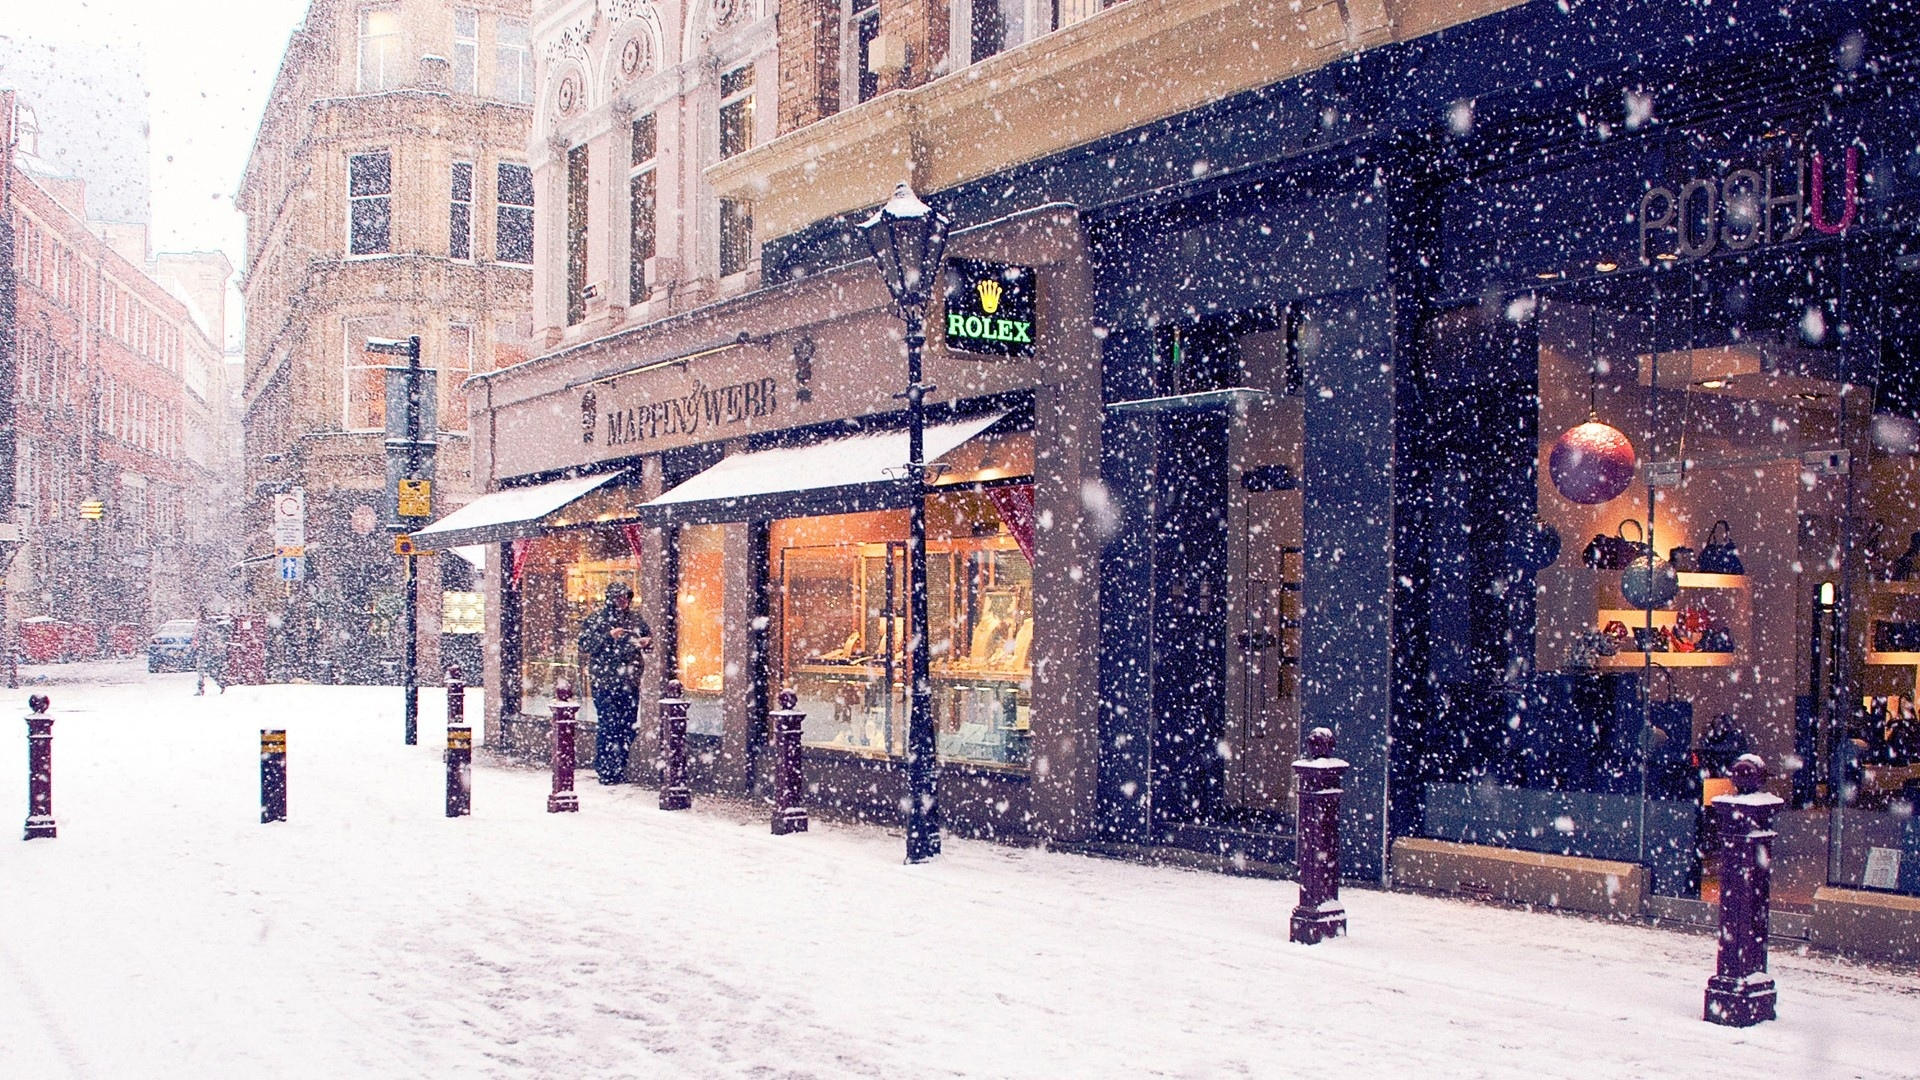 world place cities town village downtown winter snow seasons architecture buildings shop roads street snowing flakes drops white